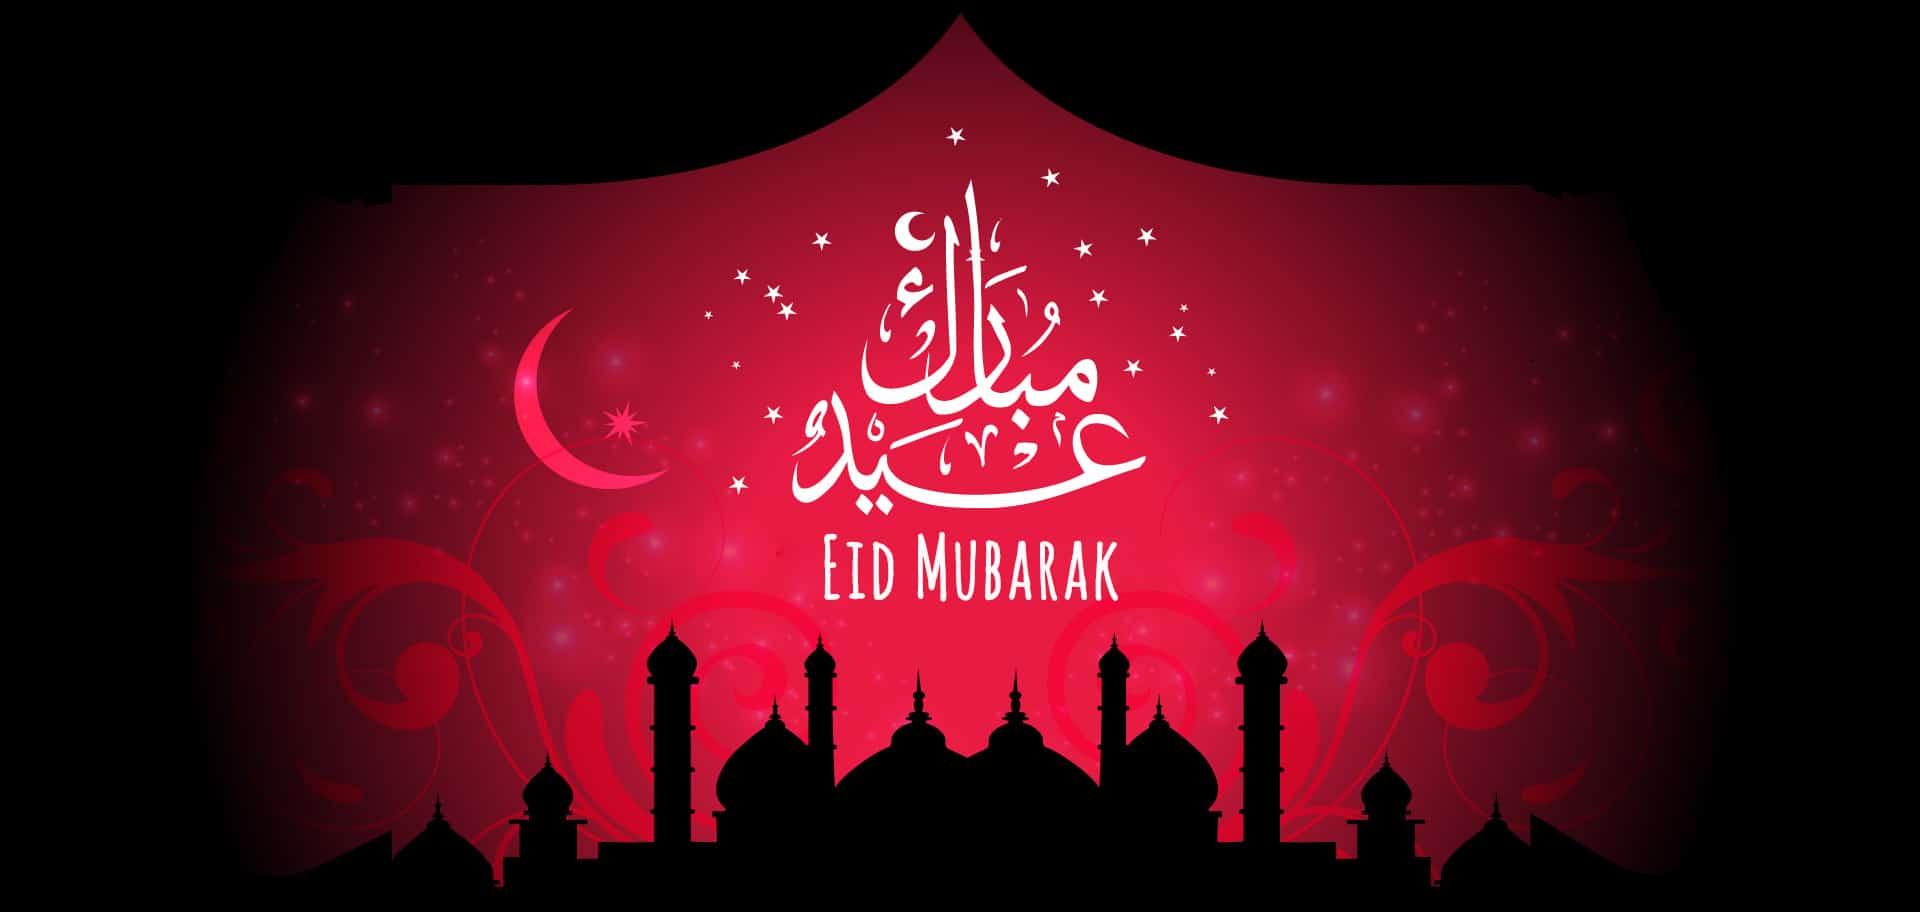 Best Eid Ul Fitr Greetings For Dear Ones Eid Al Fitr Wishes 2018